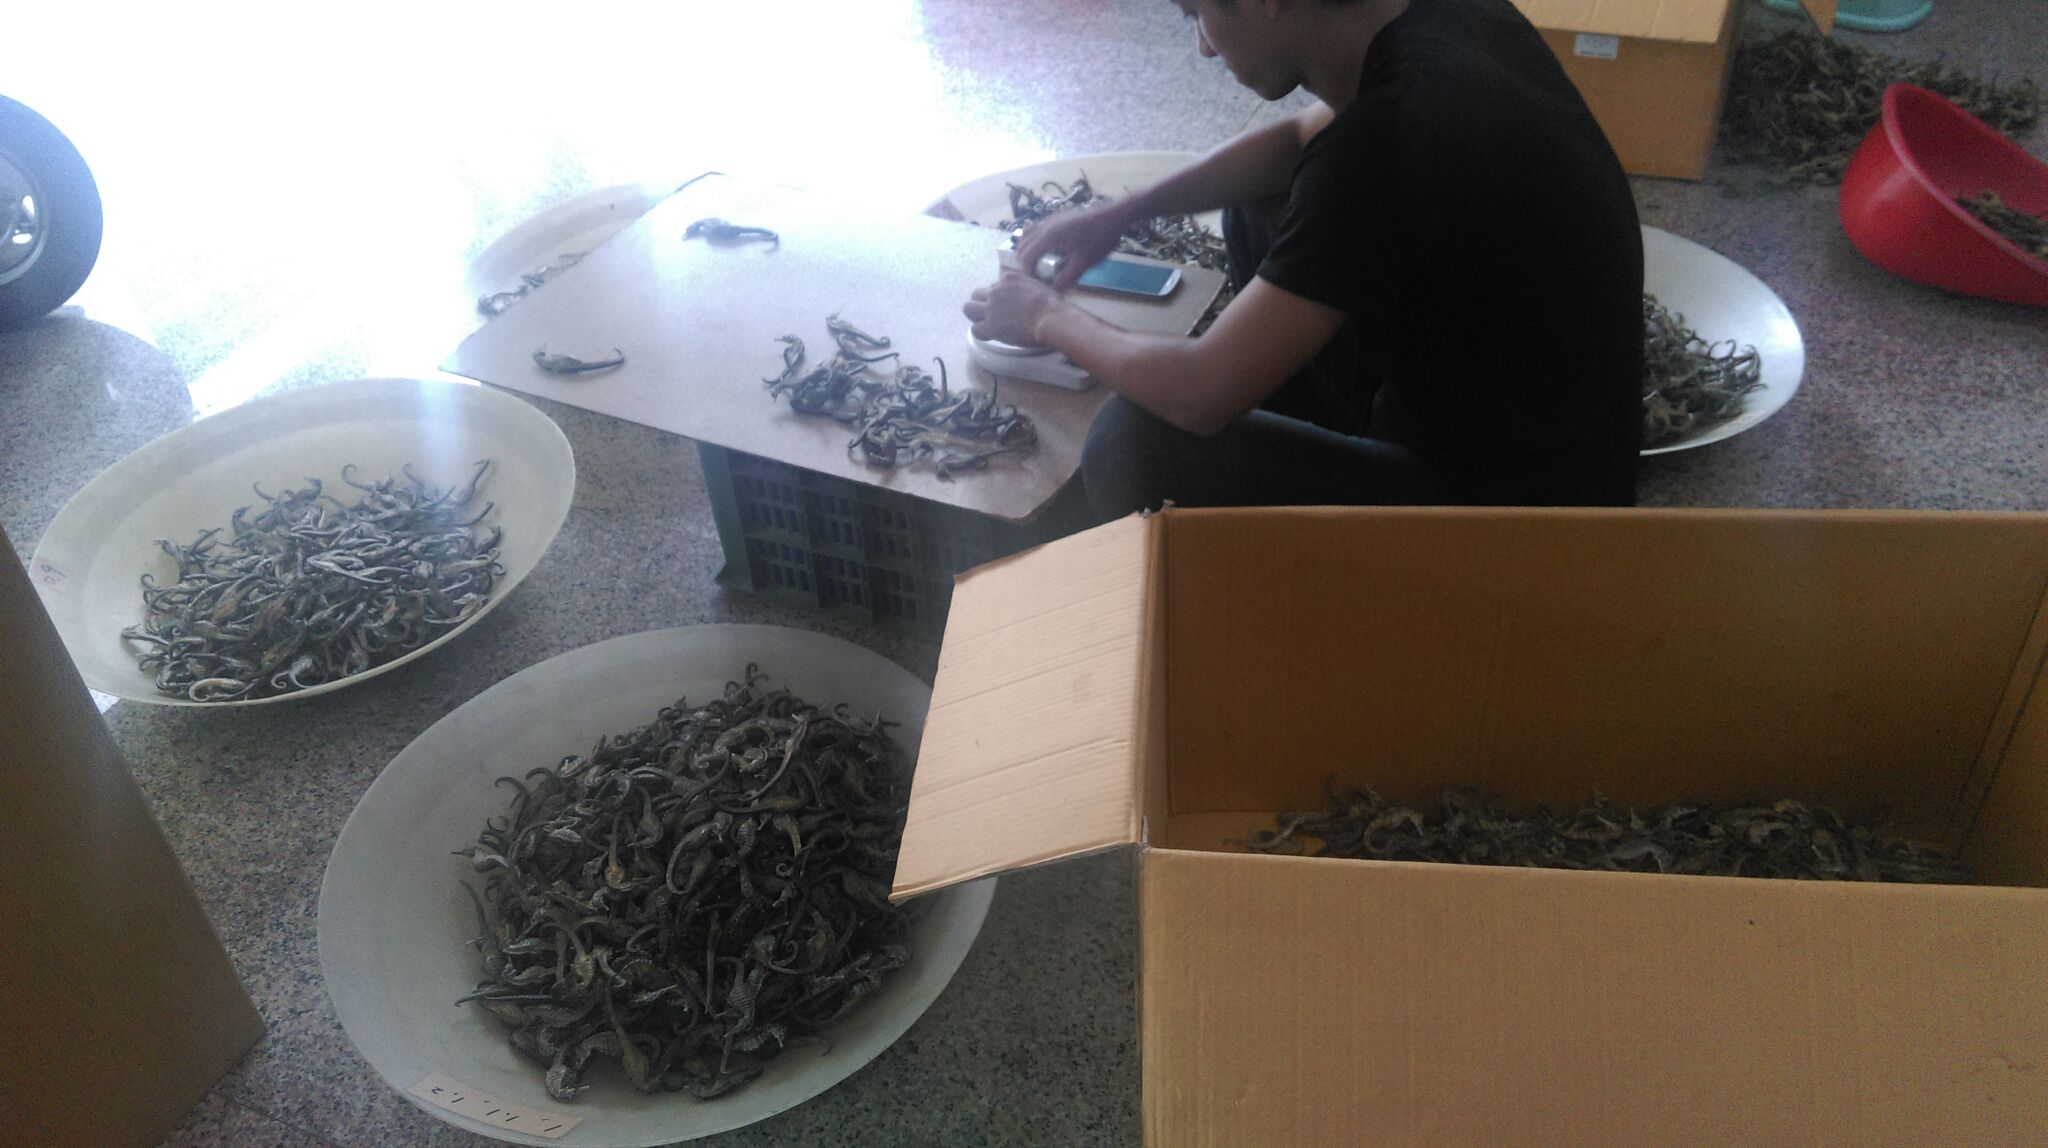 TCM wholesaler, in Kaohsiung, Taiwan, weighing seahorses and categorizing them into different size classes. TC Kuo/Project Seahorse